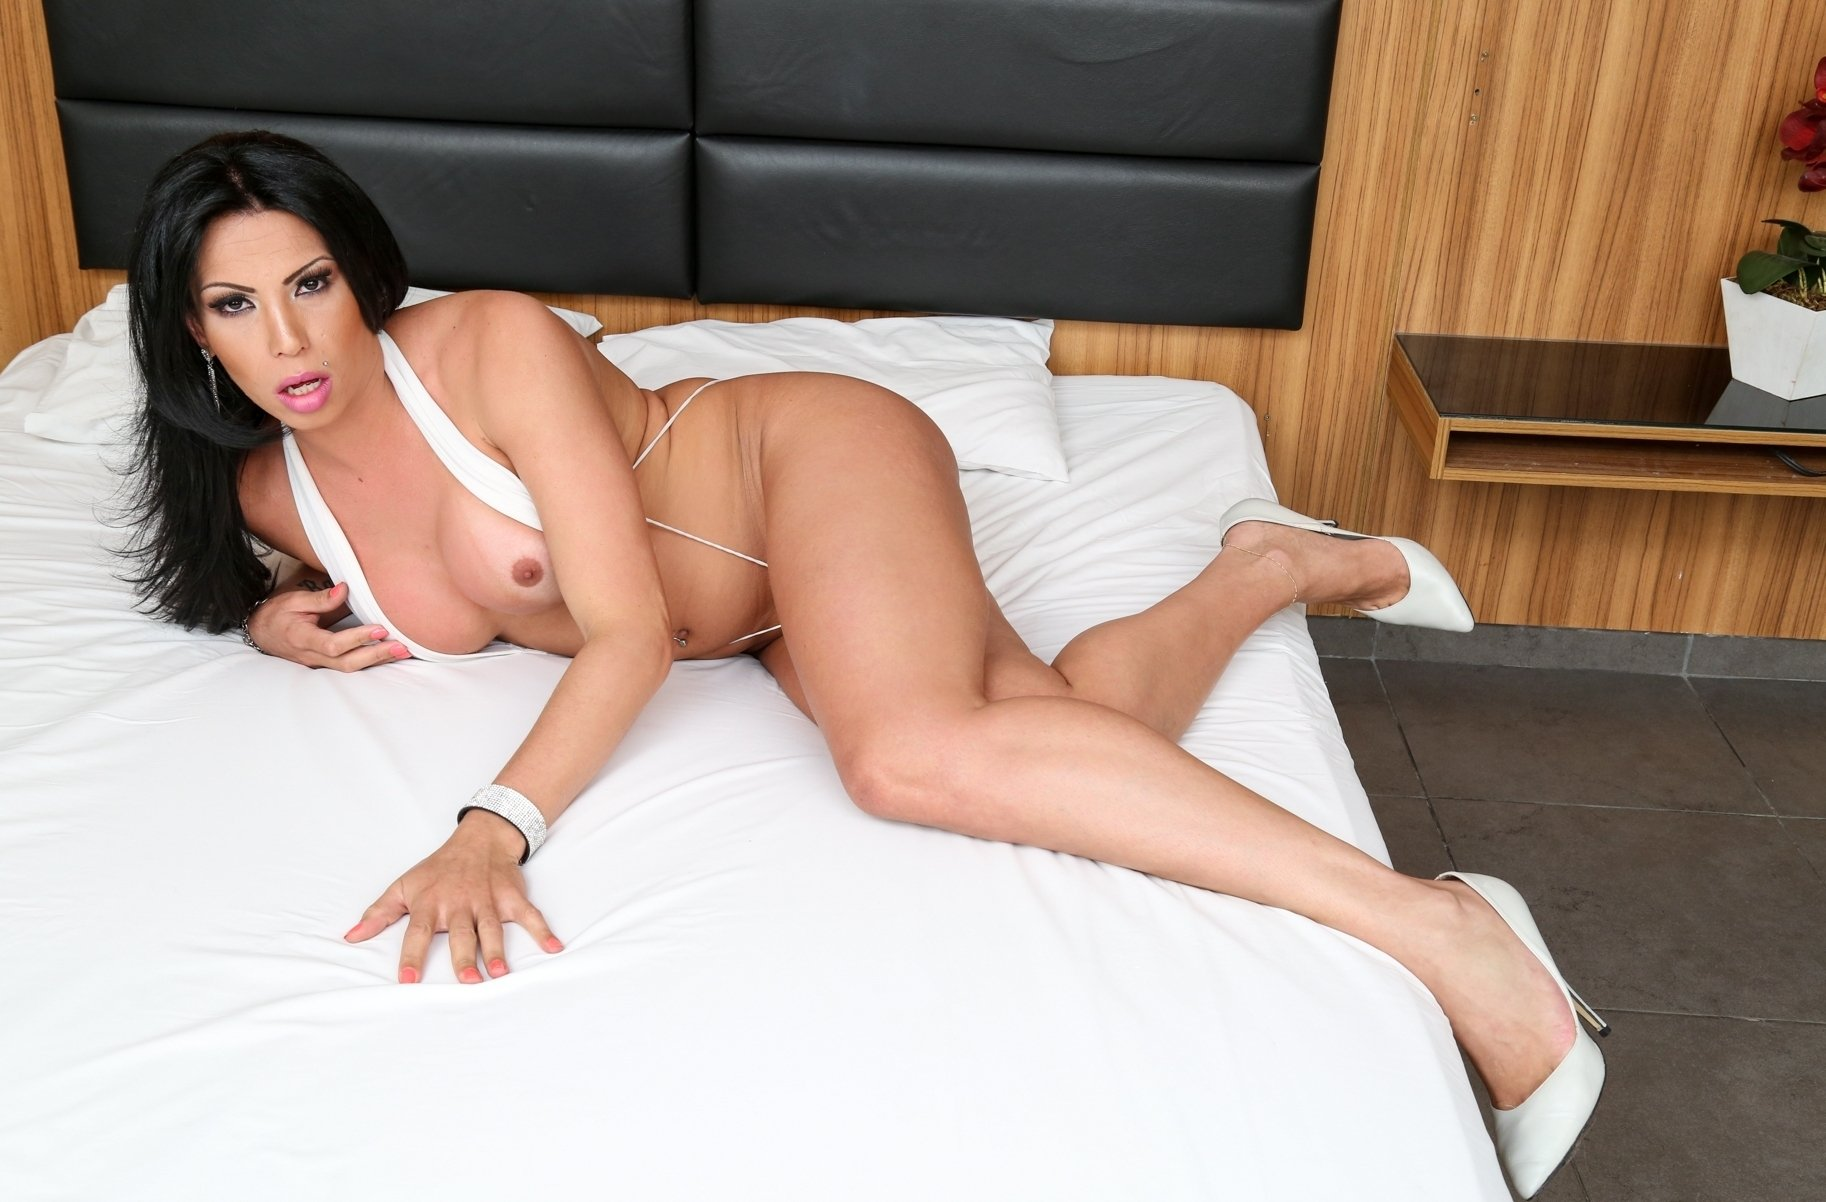 bEaSexyHottie from City of Derby,United Kingdom